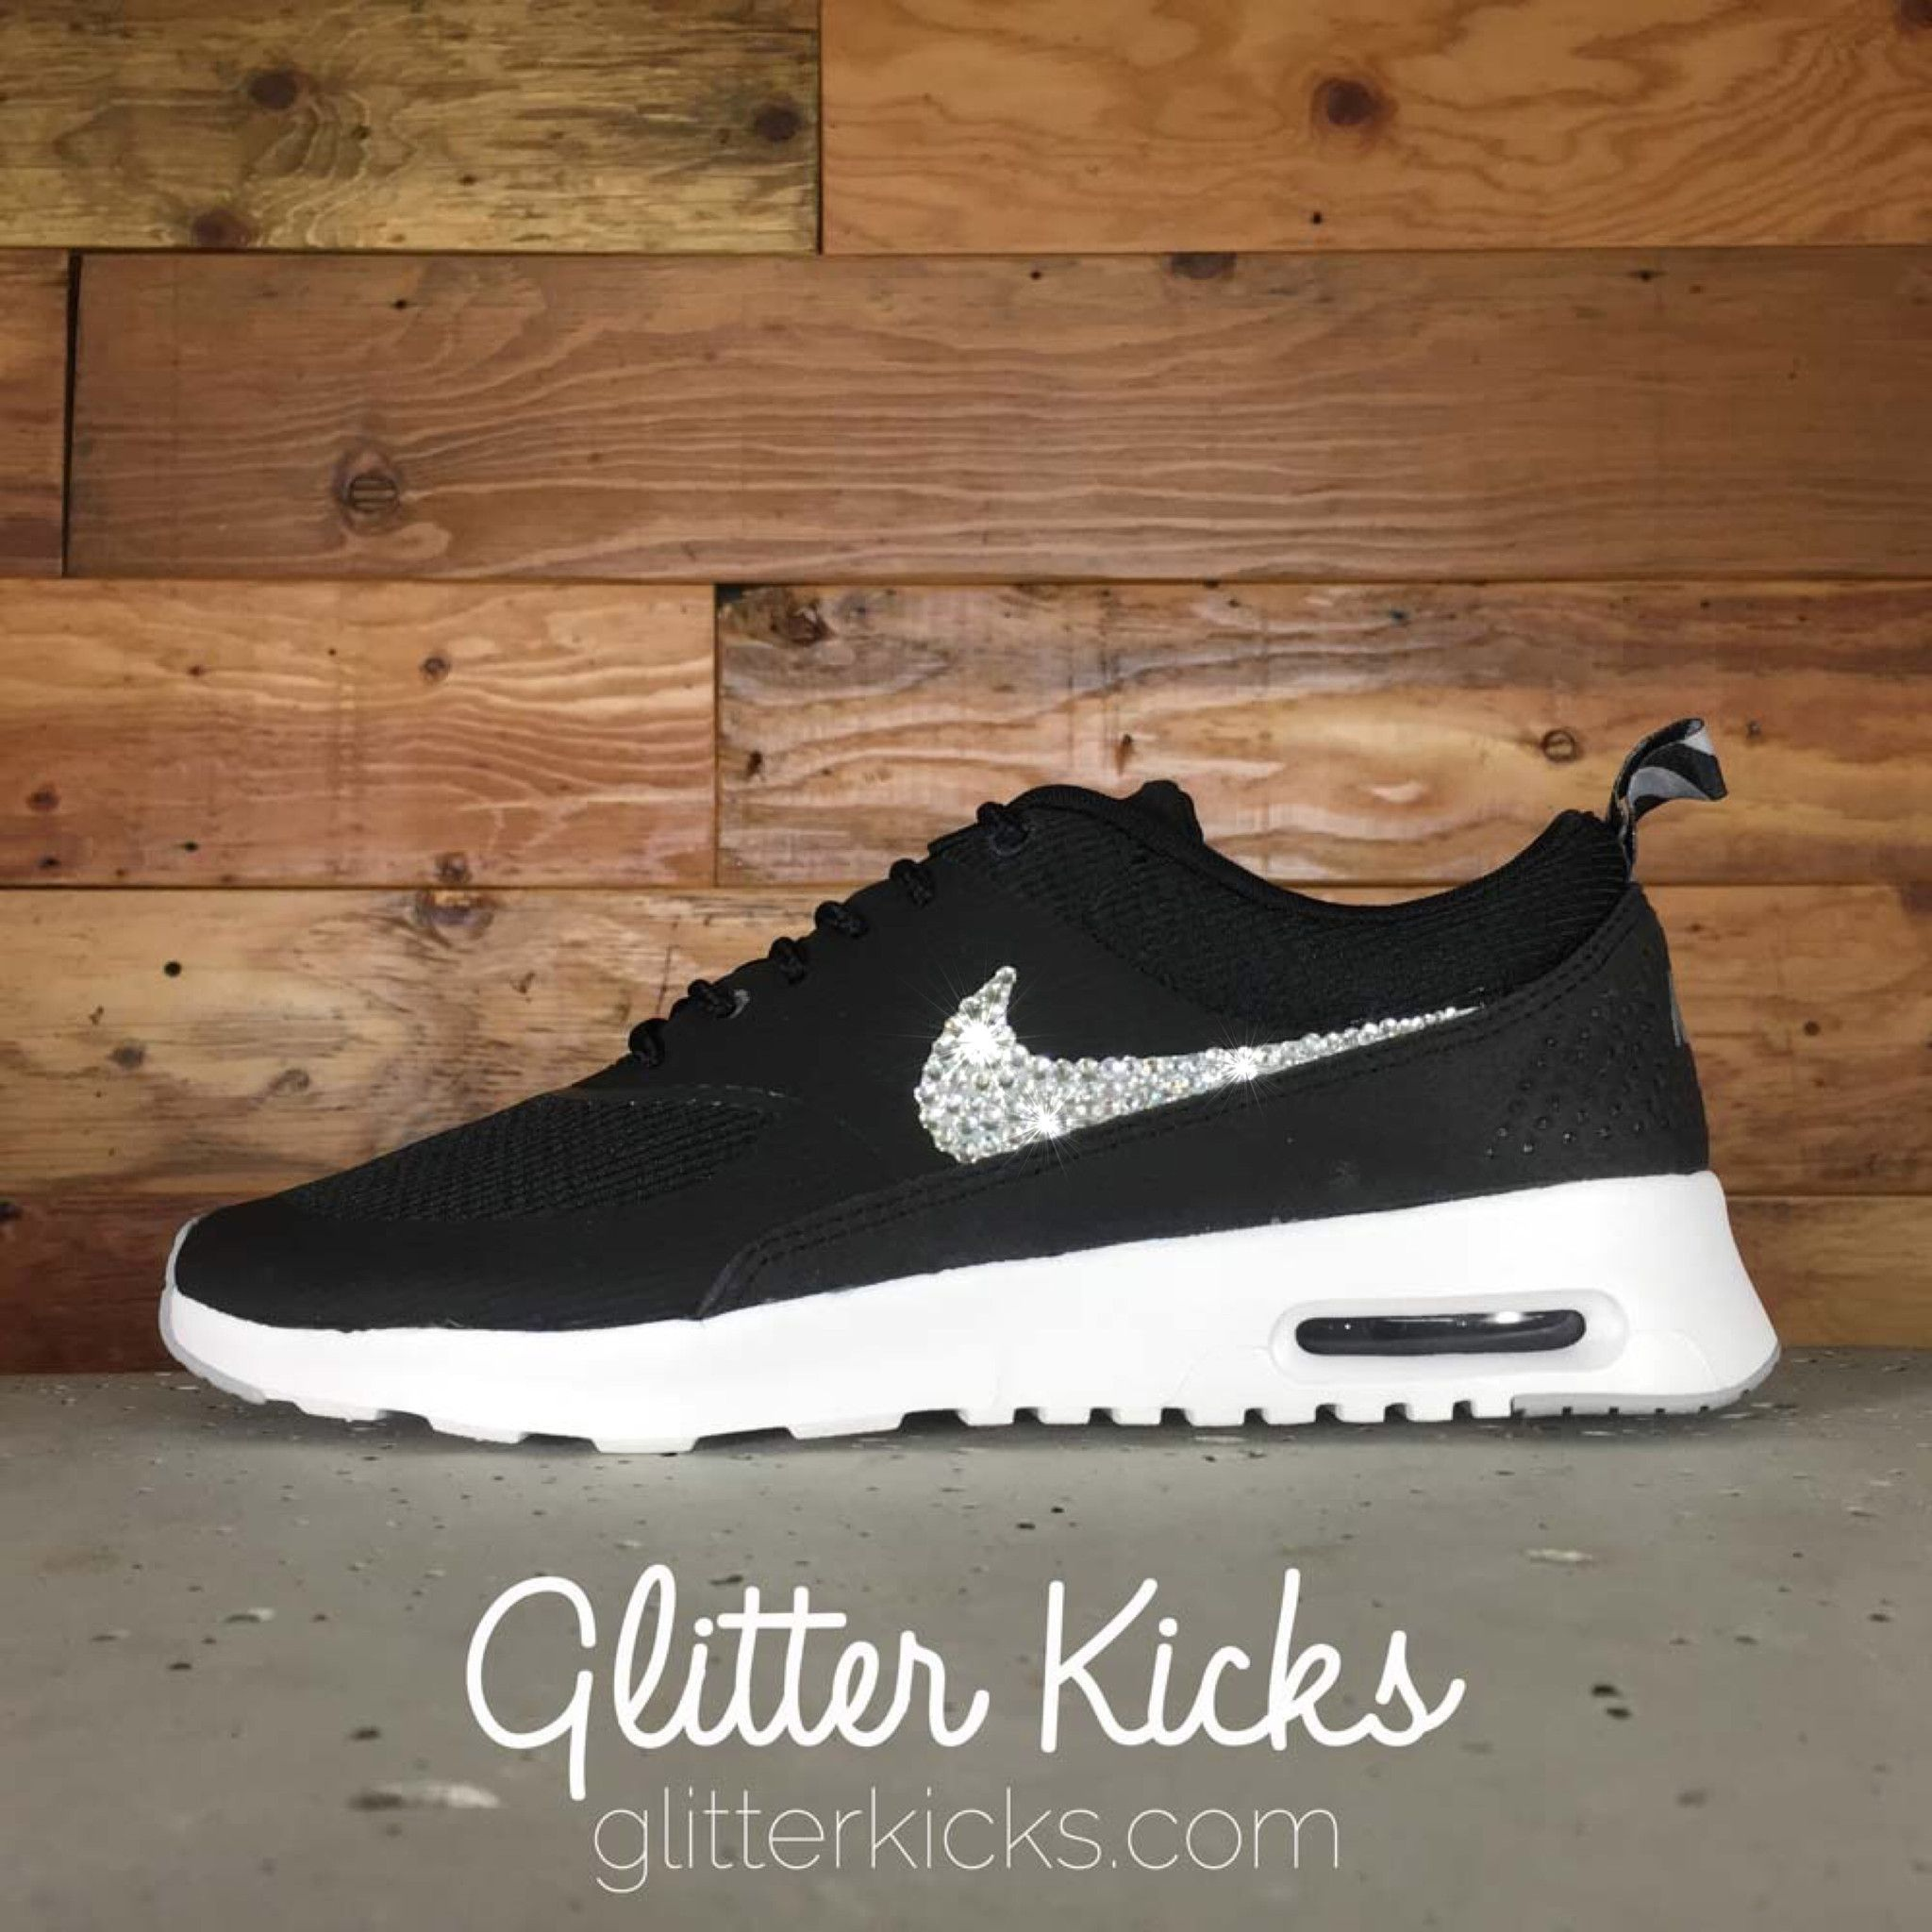 Nike Air Max Thea with Swarovski Crystals by Glitter Kicks! I will have  these at Christmas!! Excited! 277fcf9e16